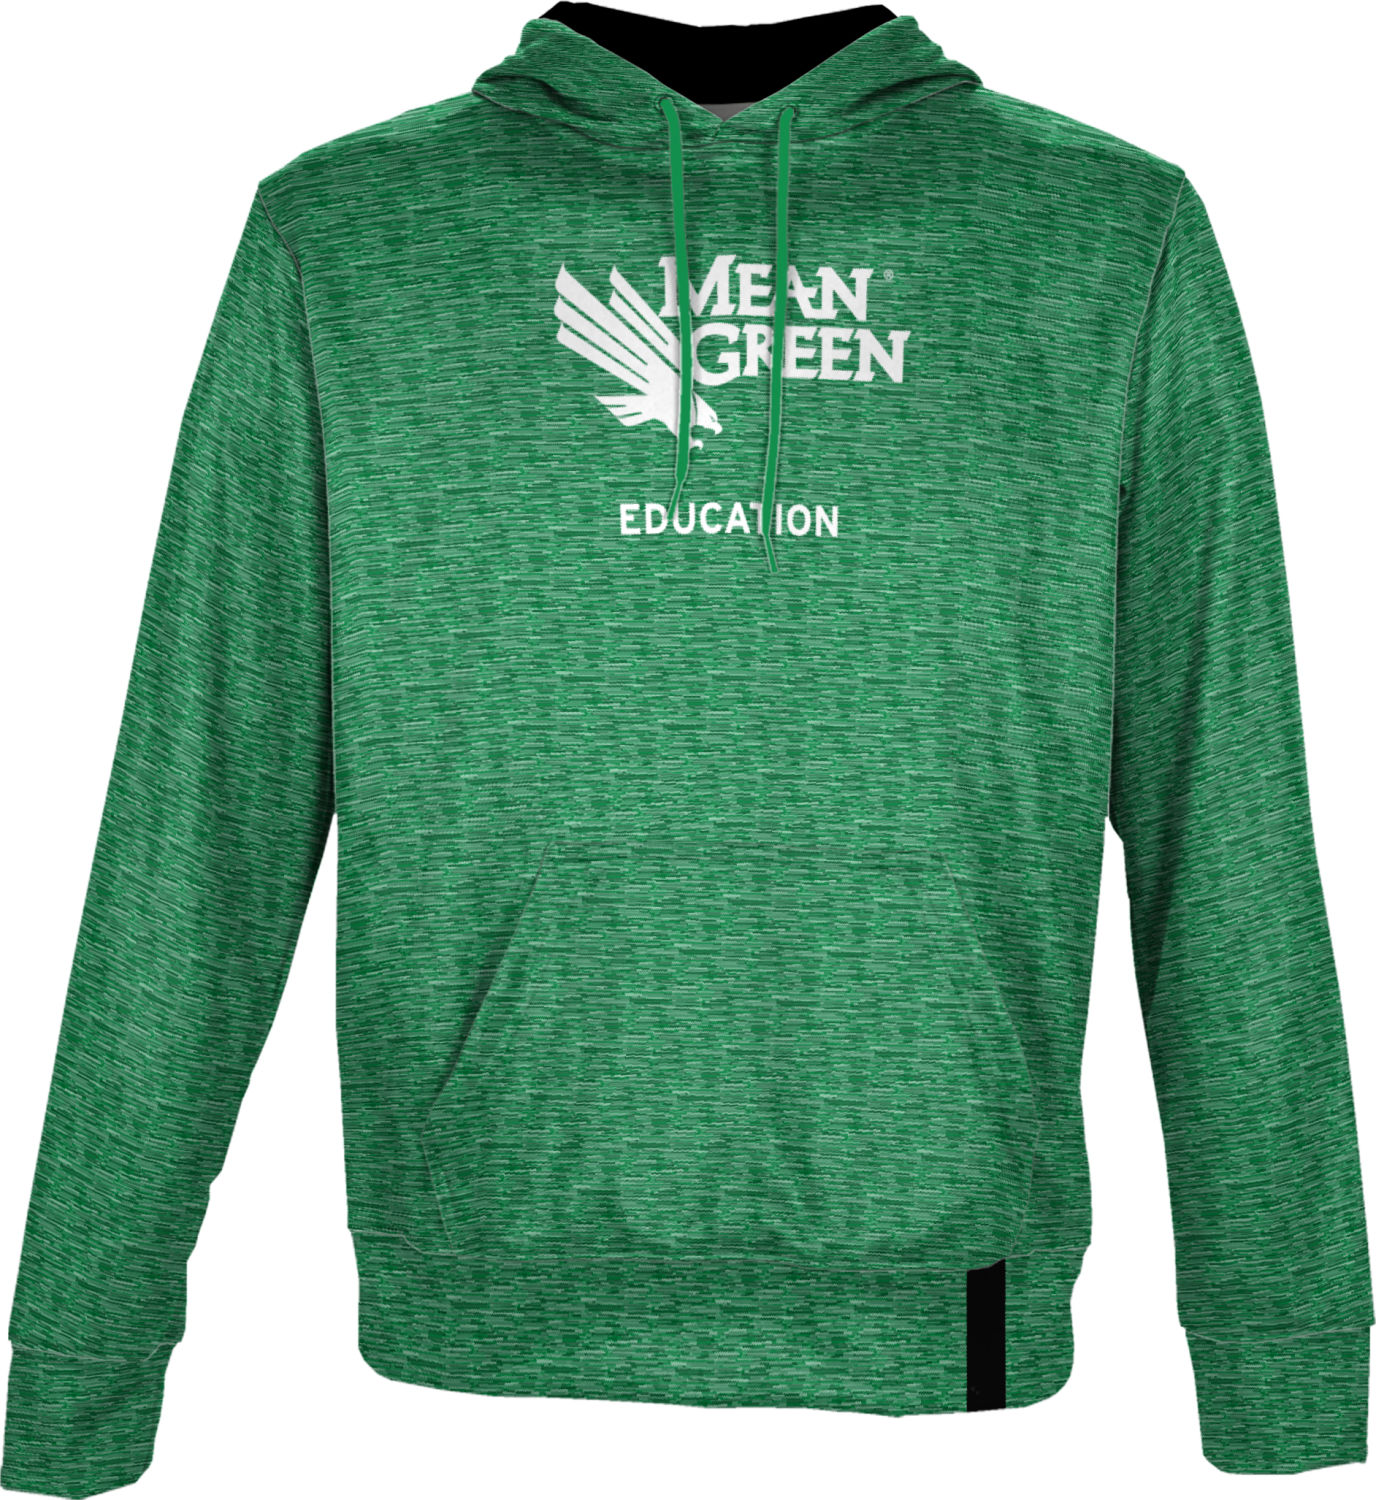 Boy's ProSphere Sublimated Hoodie - Education